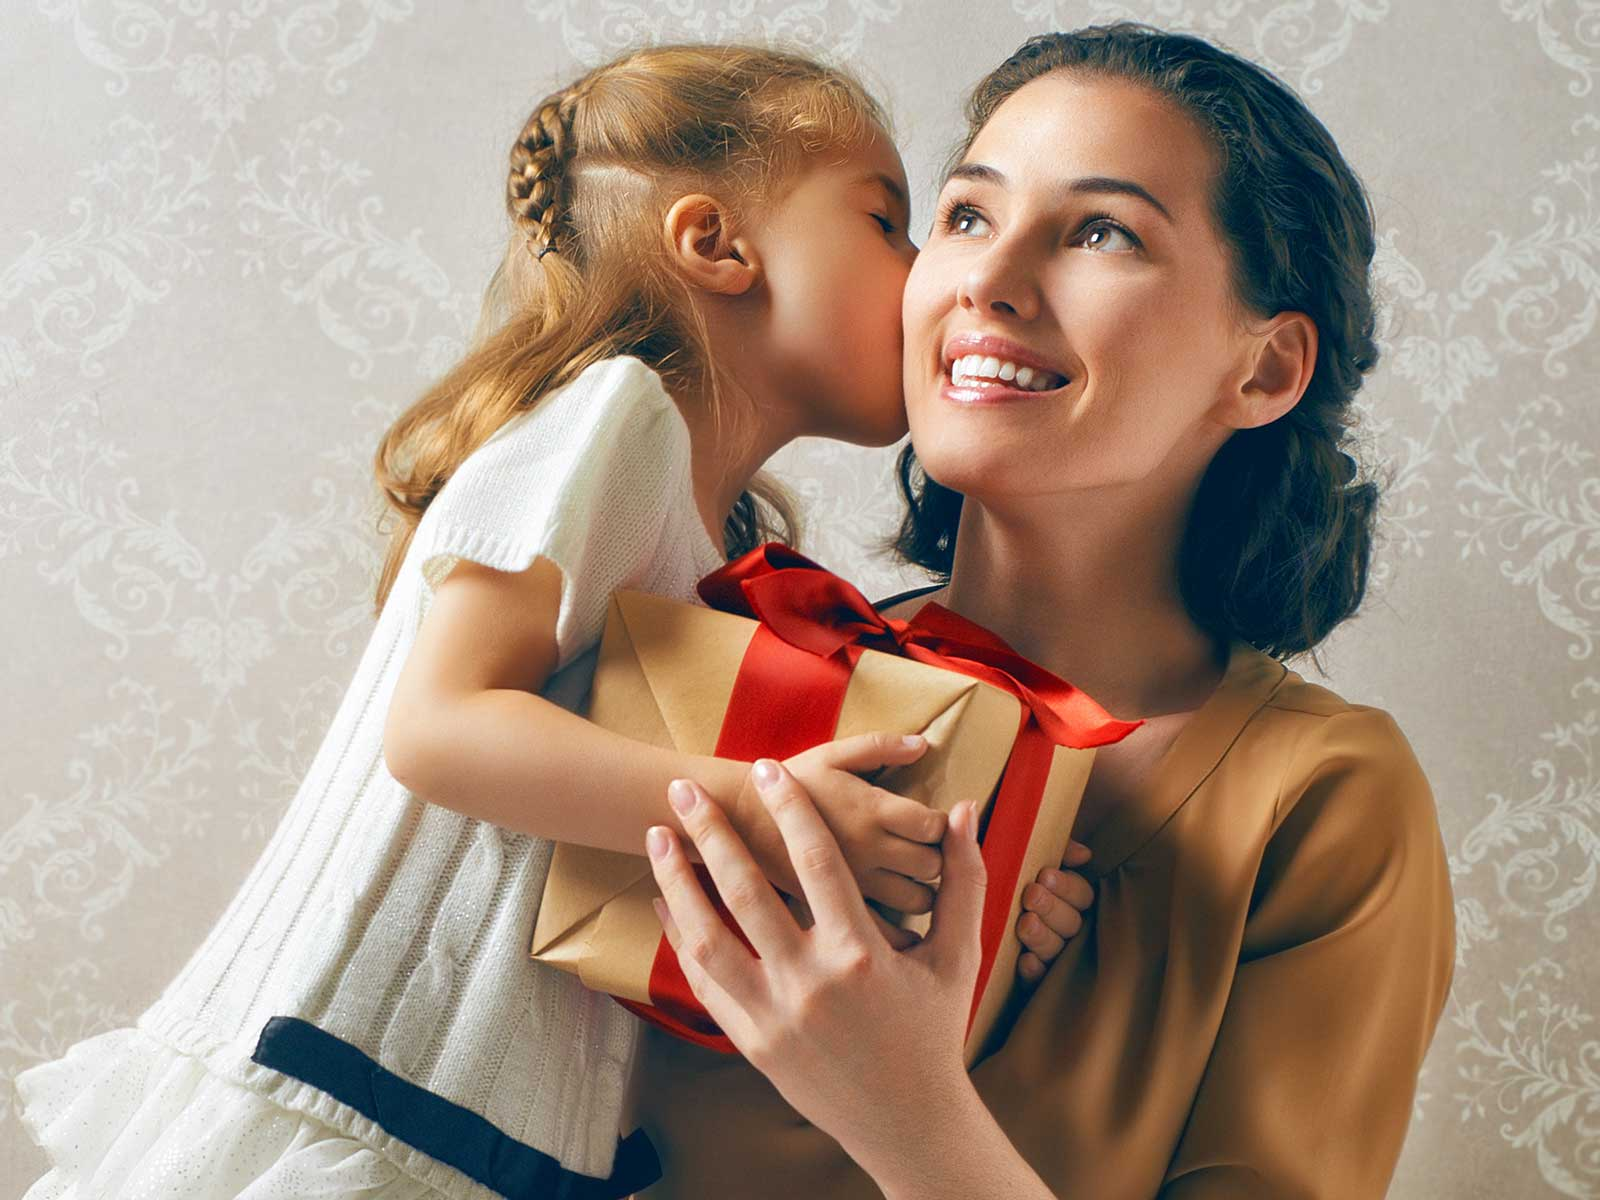 Child giving gift to mother.